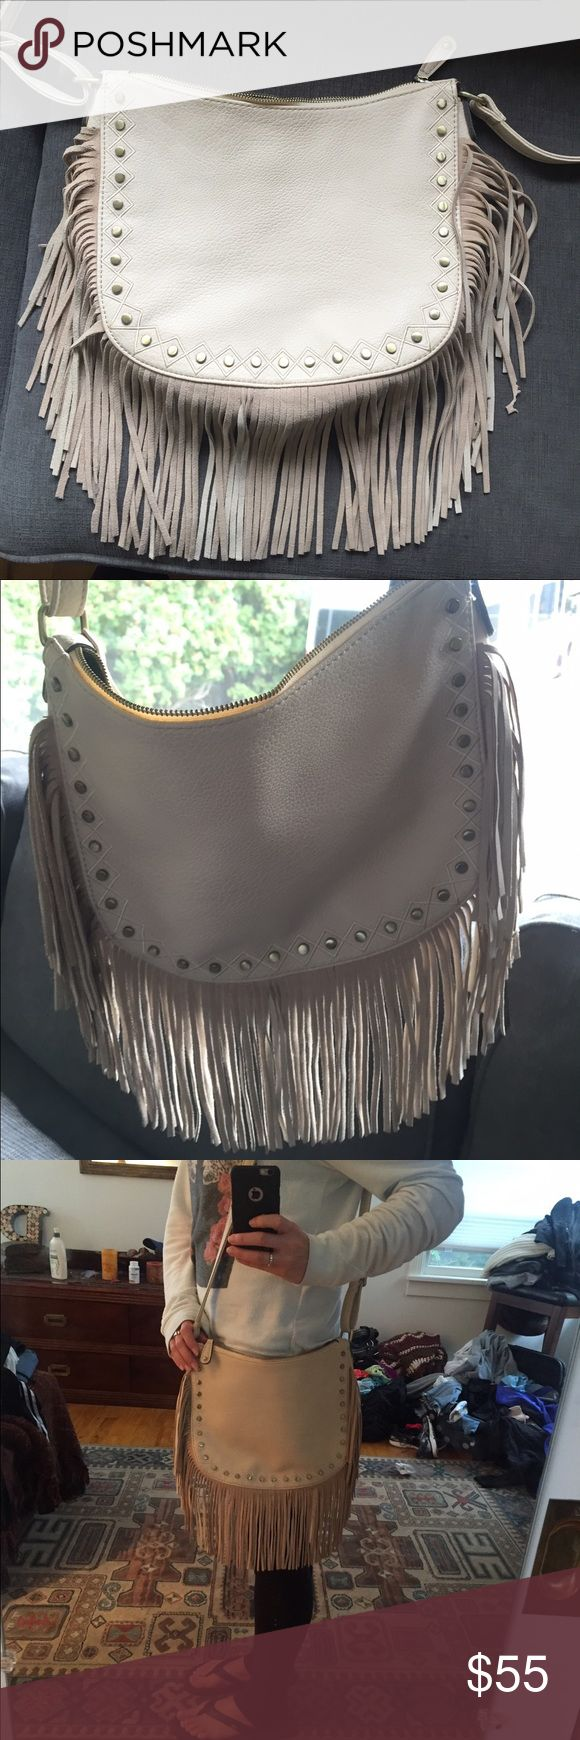 Gabriella Rocha Briley Studded Fringe Purse I only used this purse 2 times so it's like new. I bought it for $90 on 6pm.com last year if I remember right, just found it in storage at my moms house and have too many new purses! The strap is adjustable, genuine leather. The fringe is very soft. Gabriella Rocha Bags Crossbody Bags